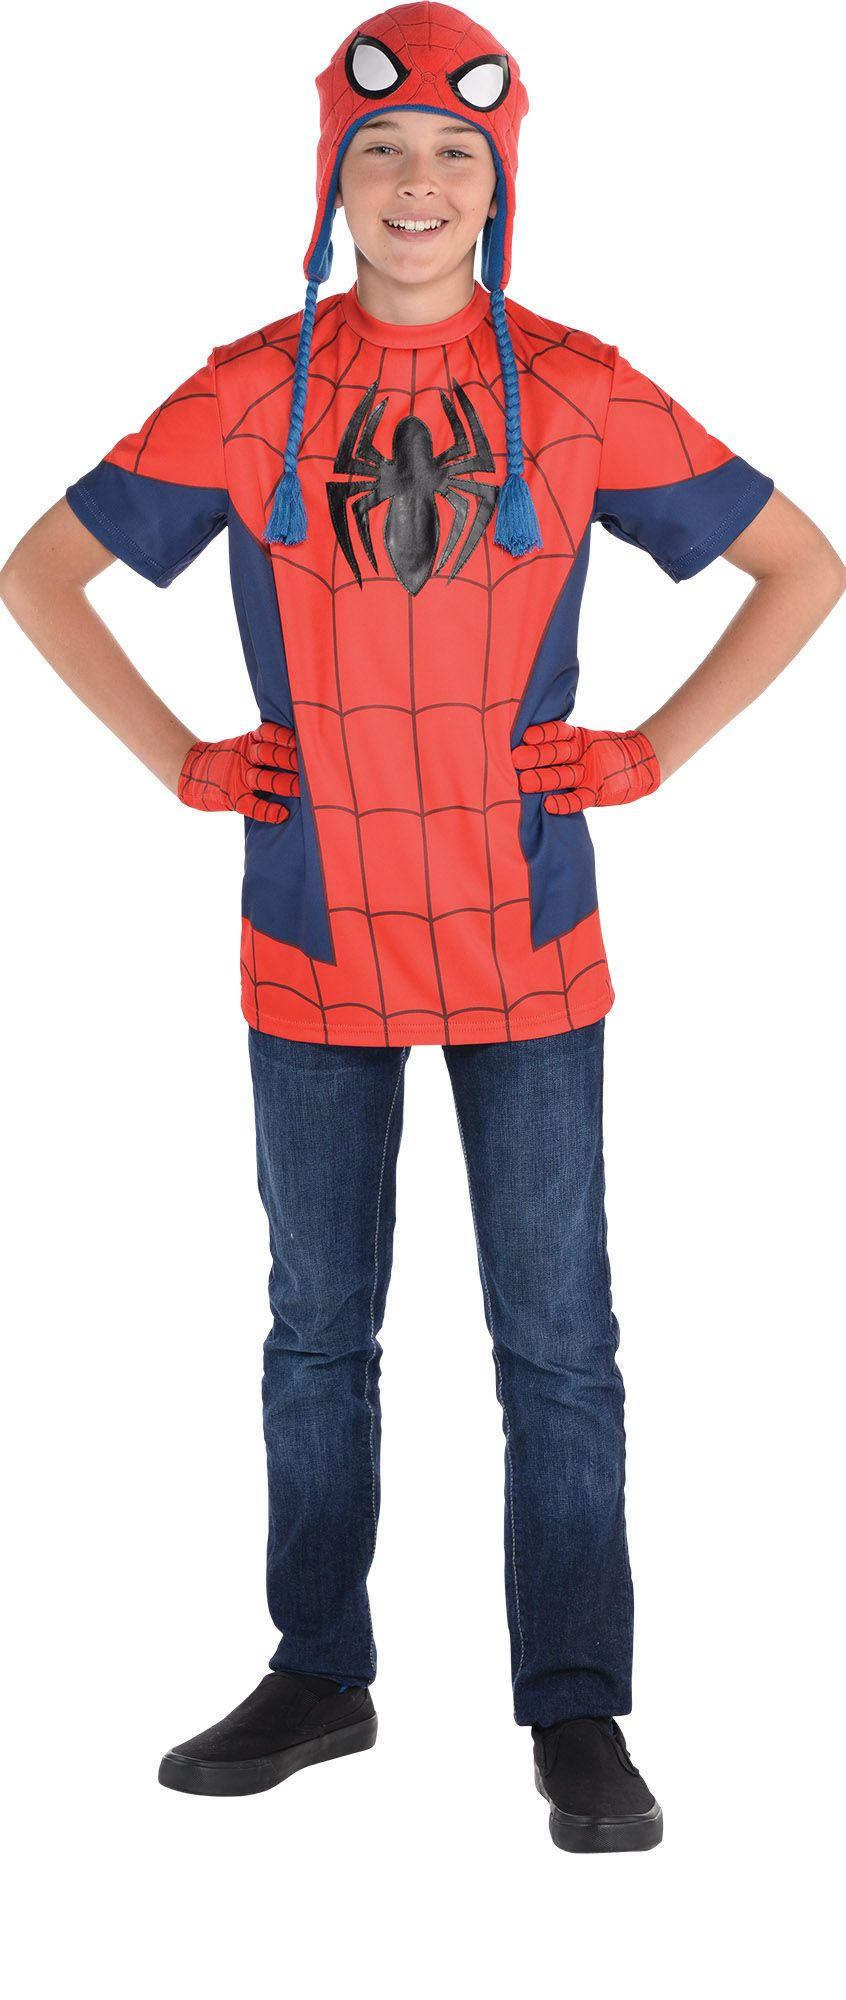 Create Your Look - Boy Spiderman